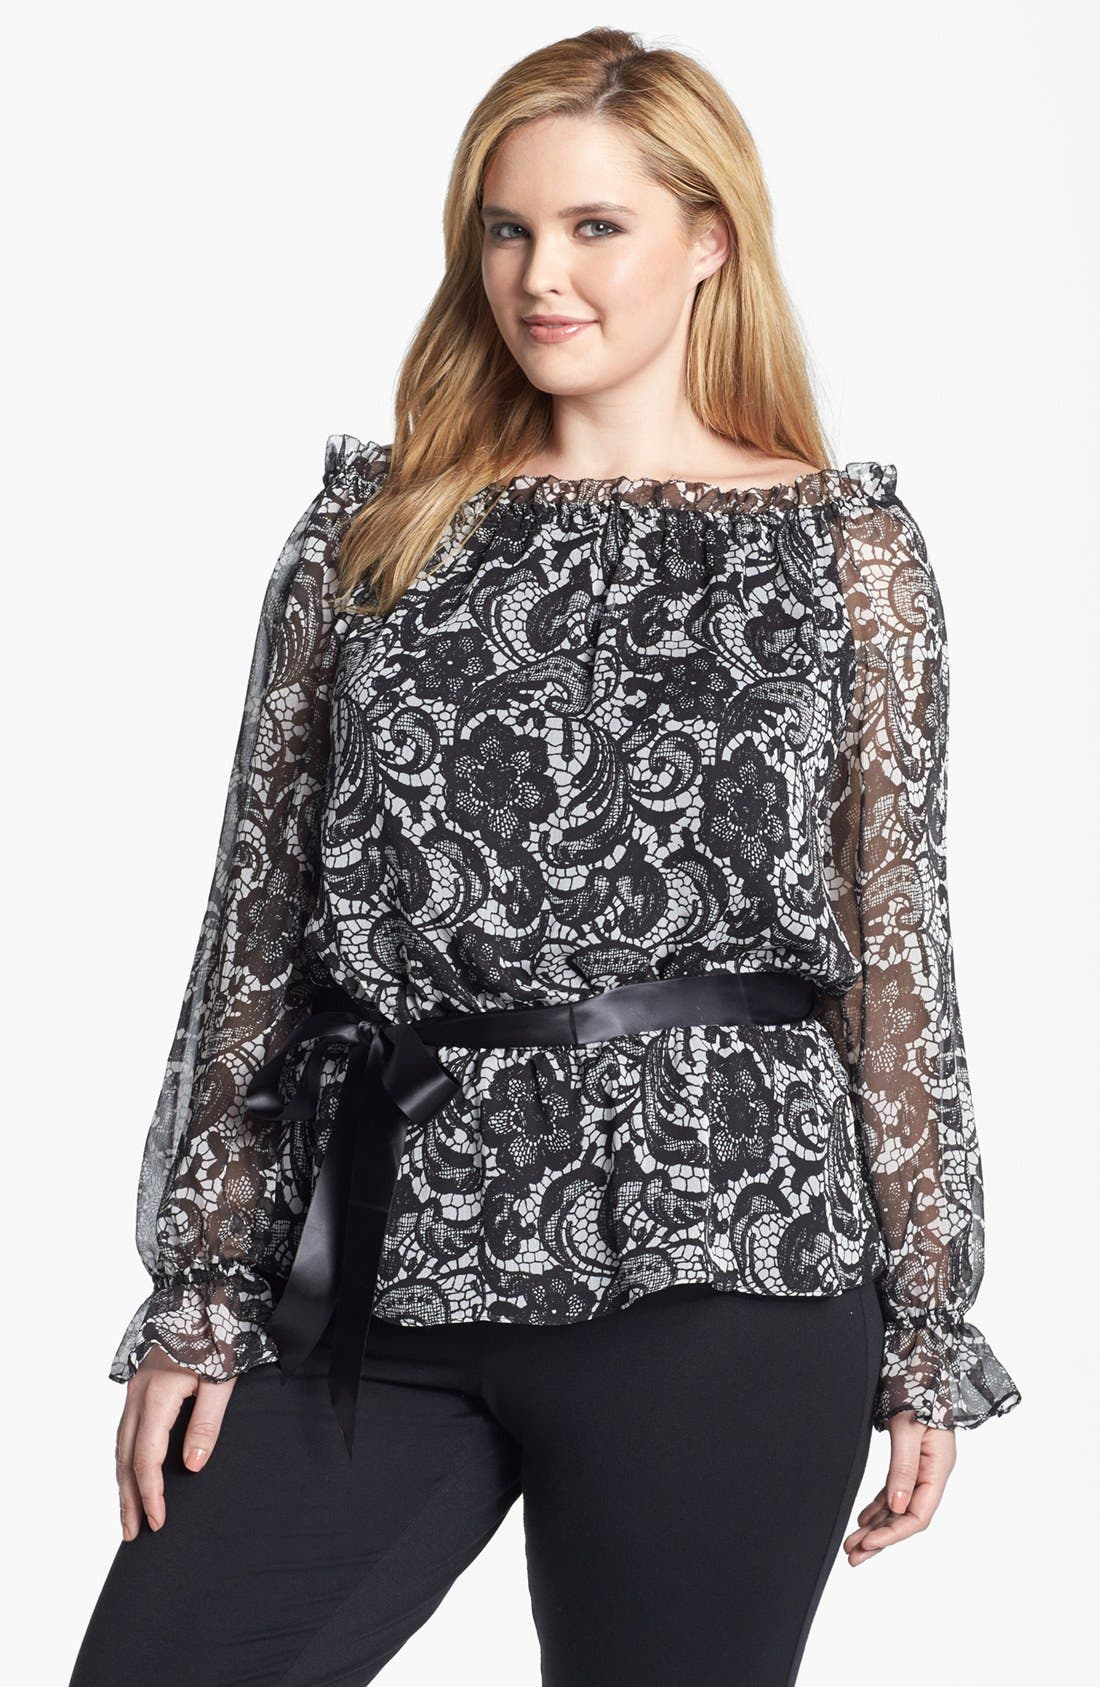 Main Image - Adrianna Papell Lace Print Blouse (Plus Size)